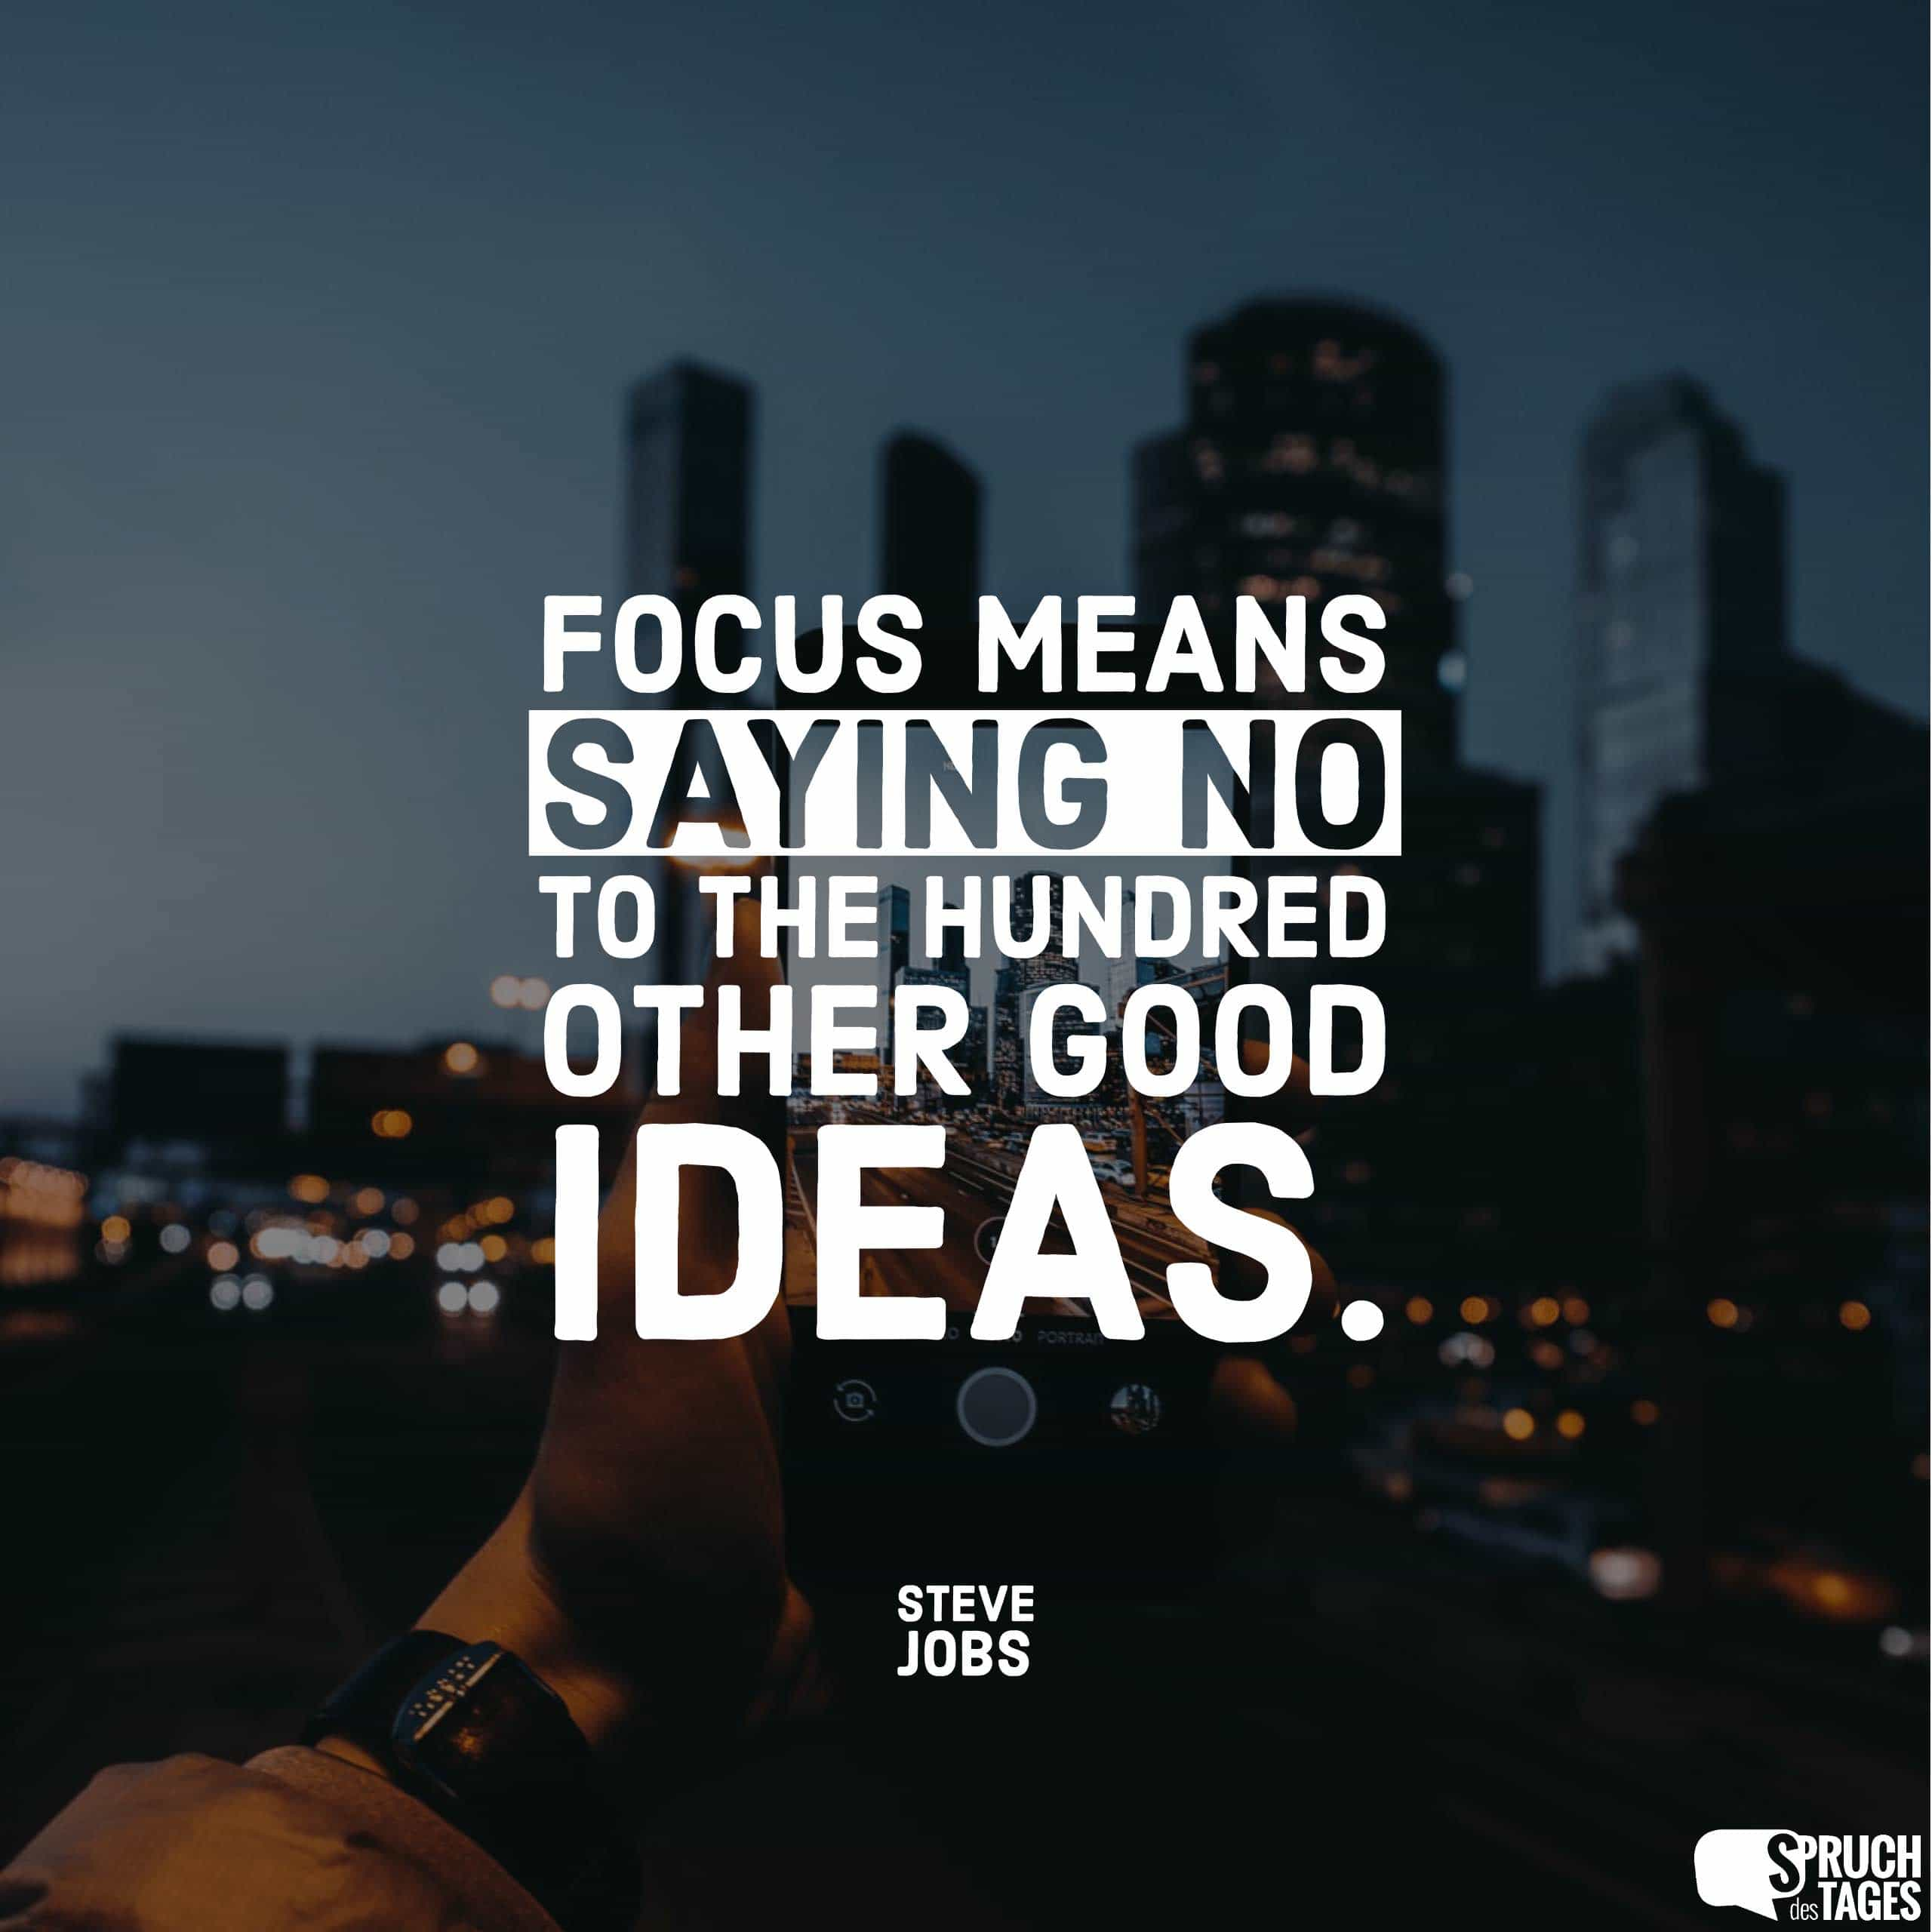 Focus means saying no to the hundred other good ideas.